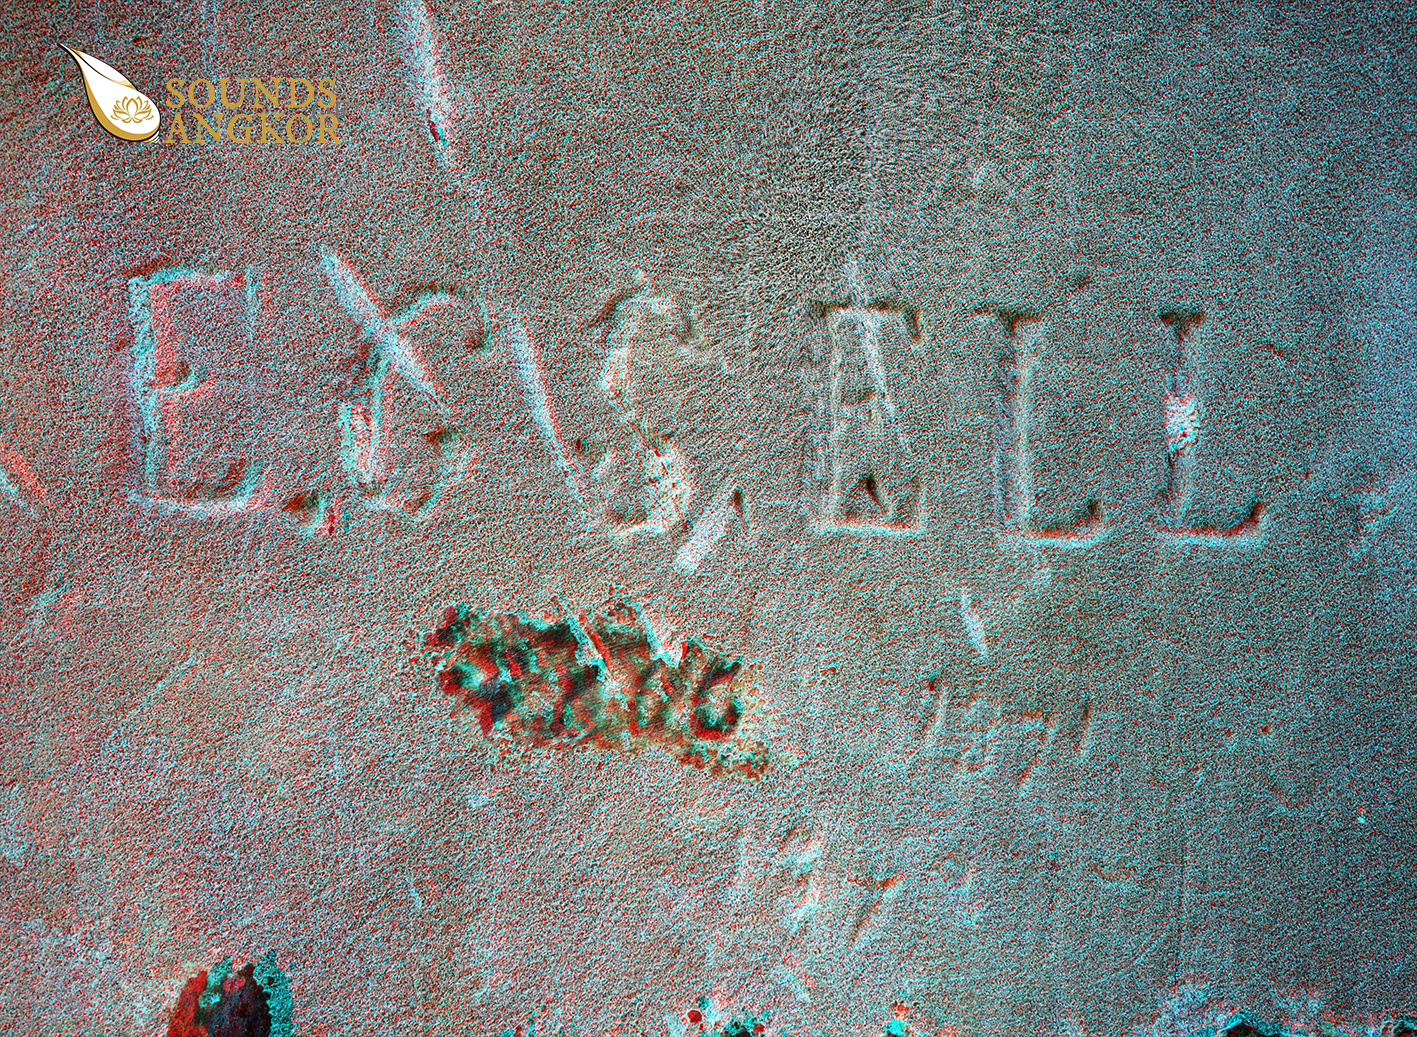 Autograph in anaglyph format requiring red and blue glasses to see the relief.